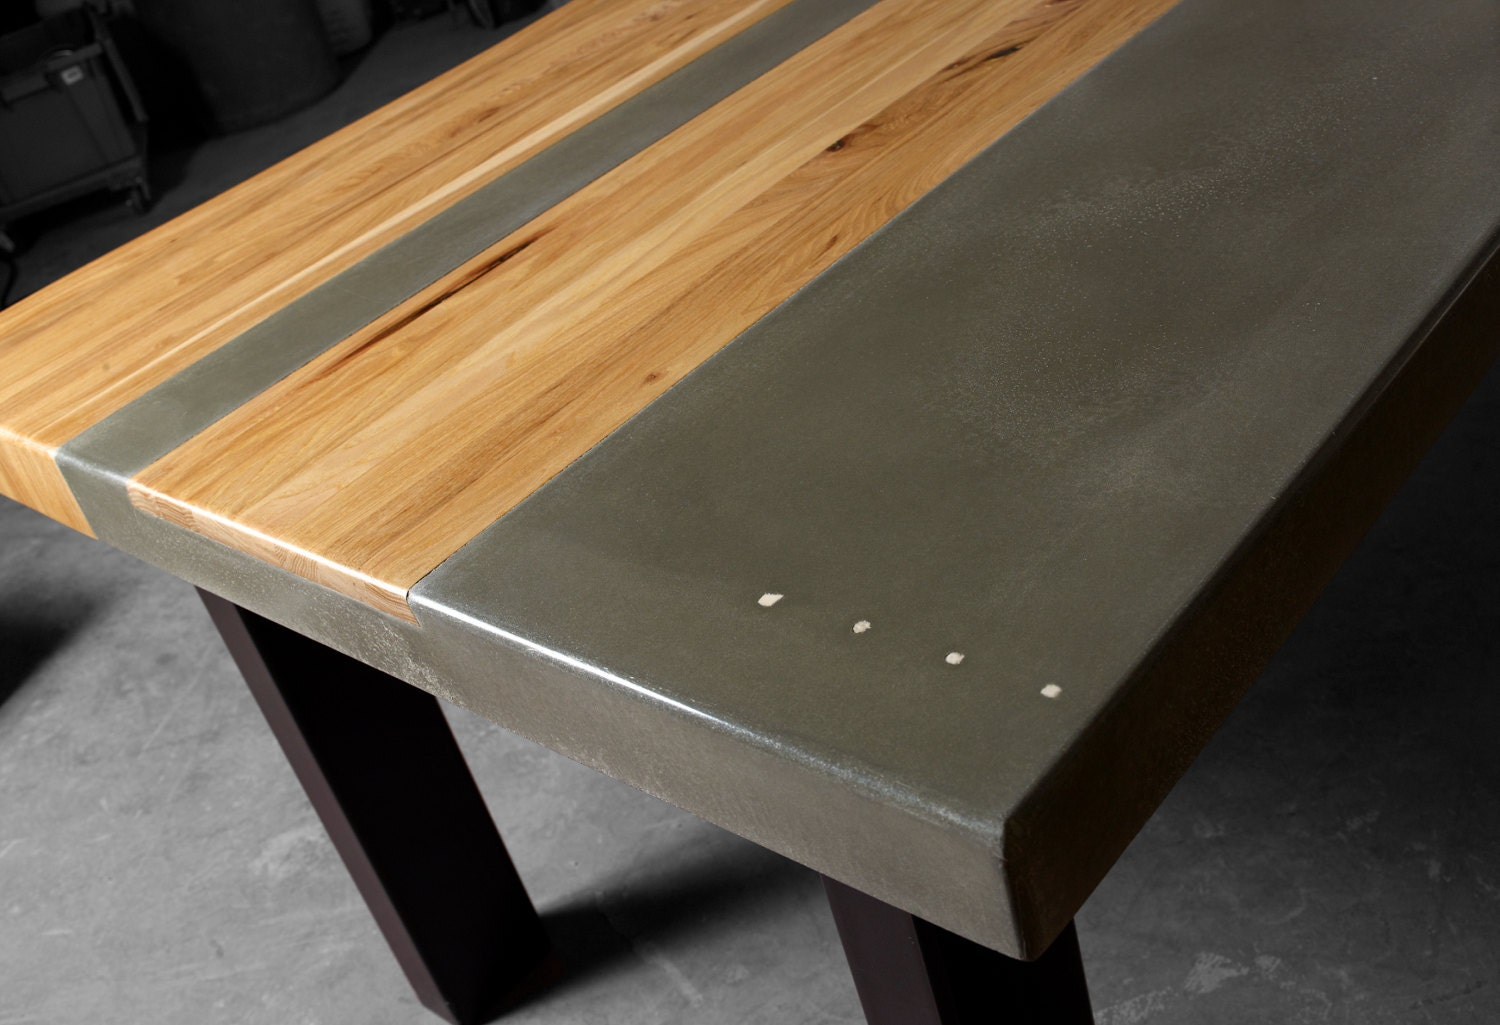 Concrete wood steel dining kitchen table - Steel kitchen tables ...